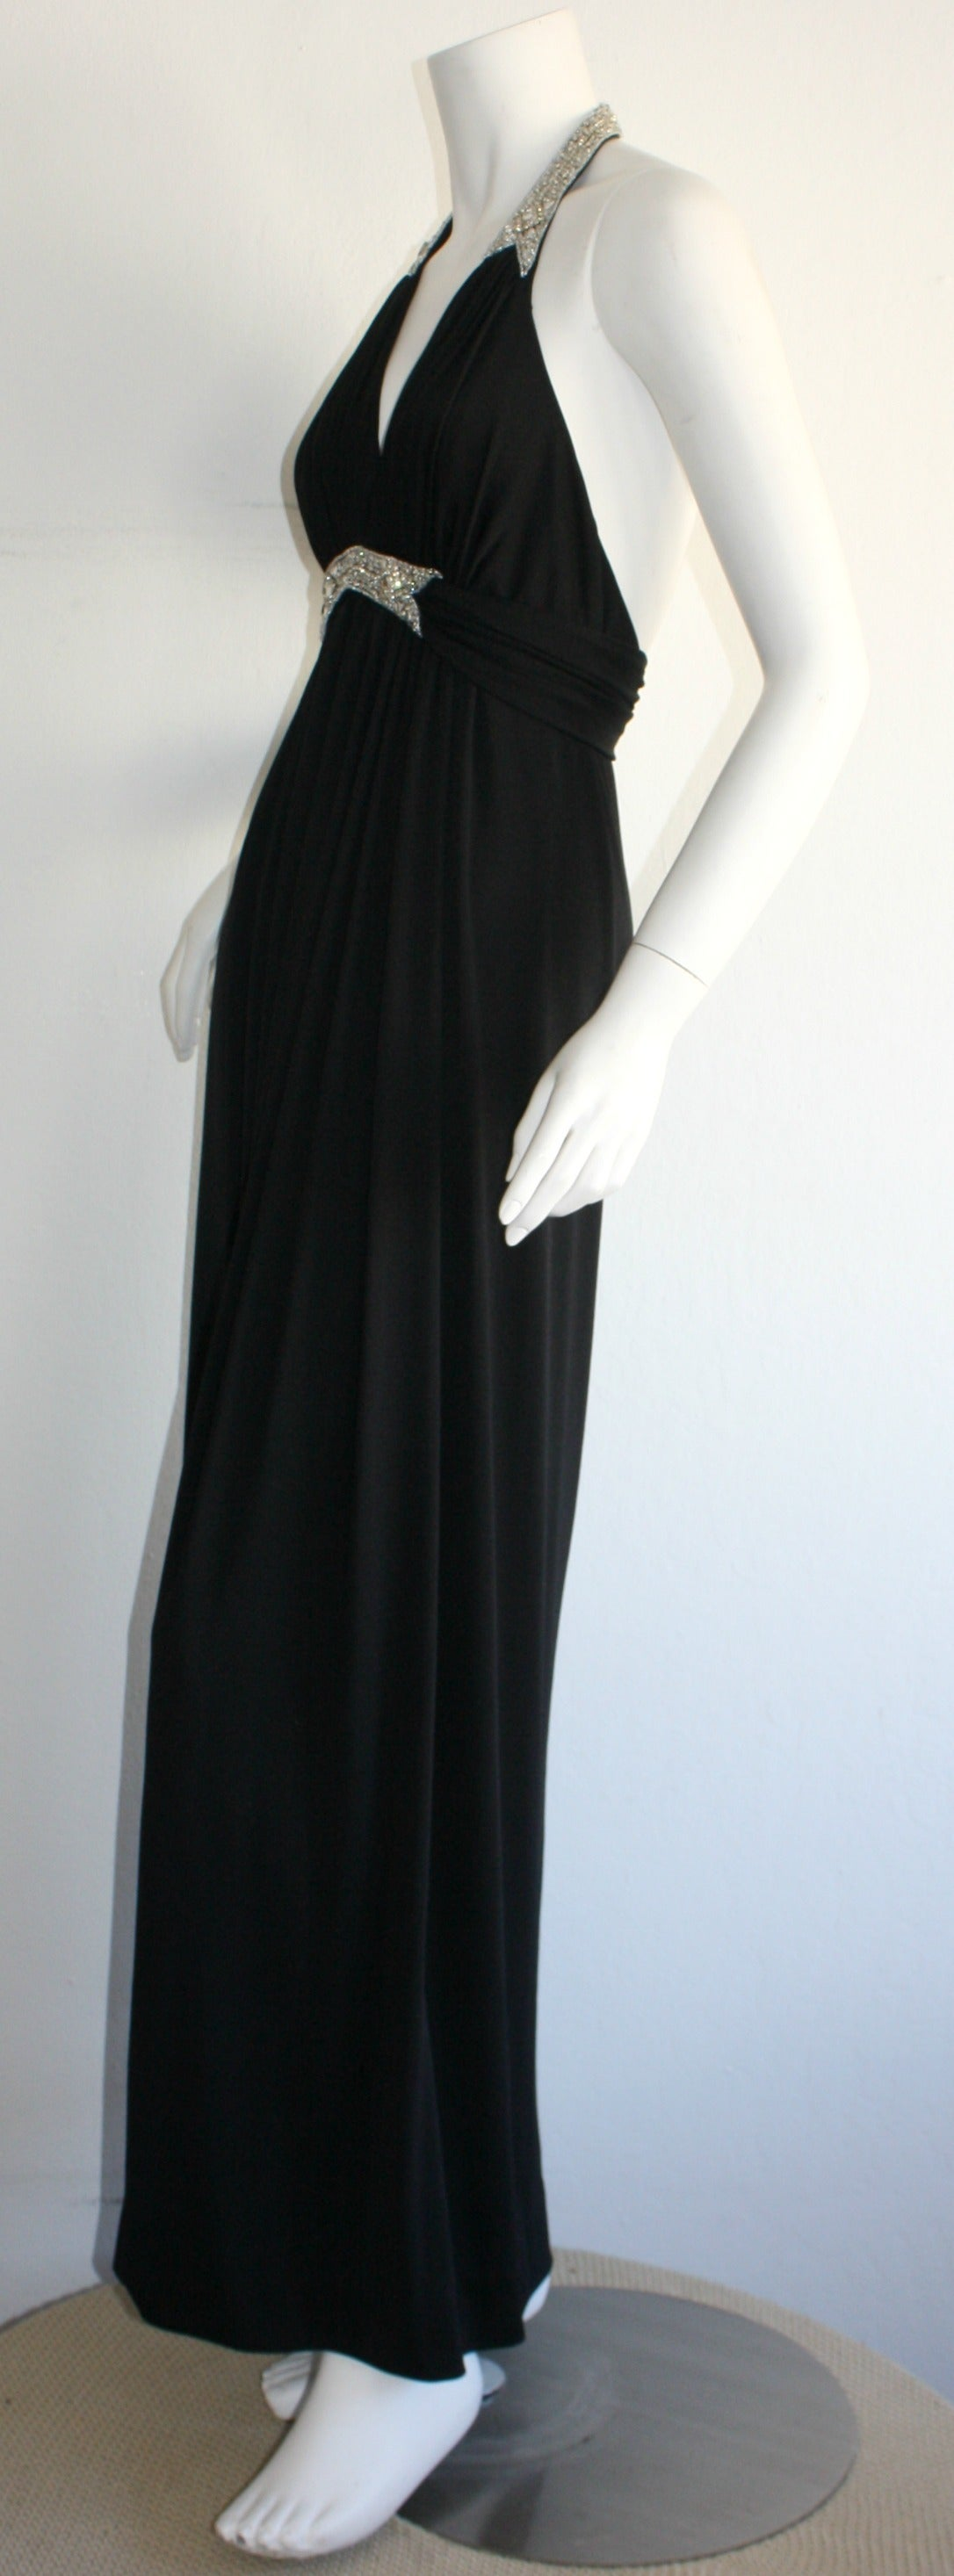 Stunning 1970s Vintage Victoria Royal Black Halter Diamanté Jersey Dress For Sale 4